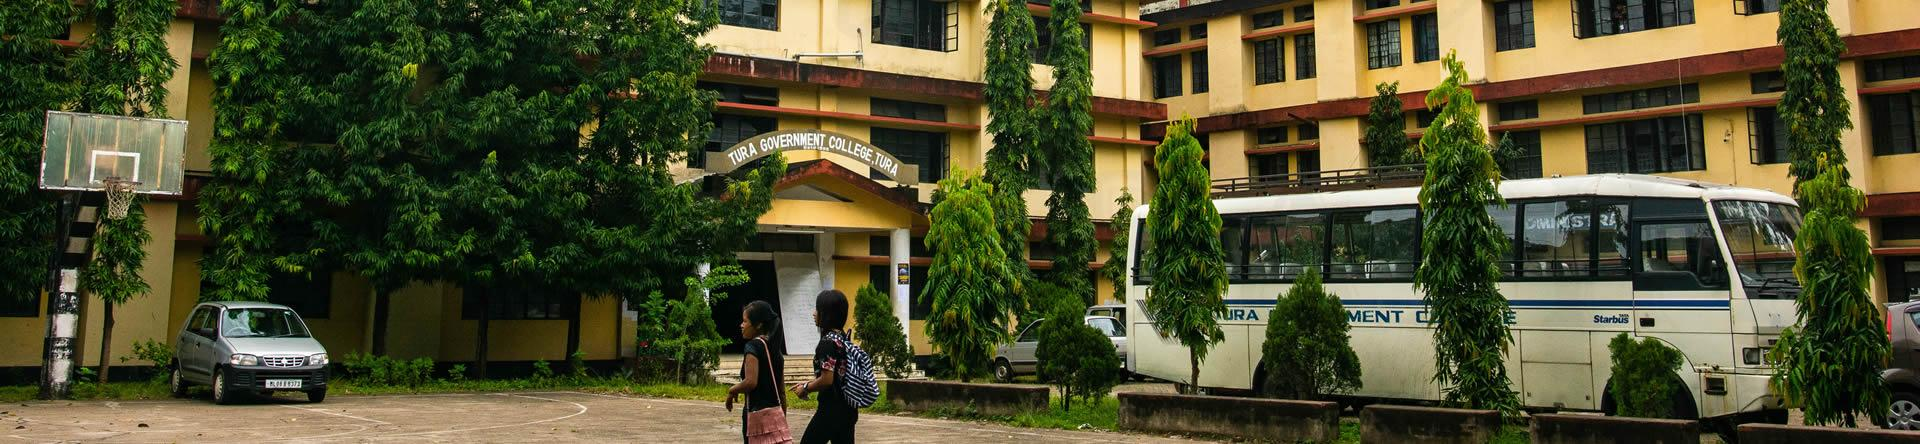 College Main Campus